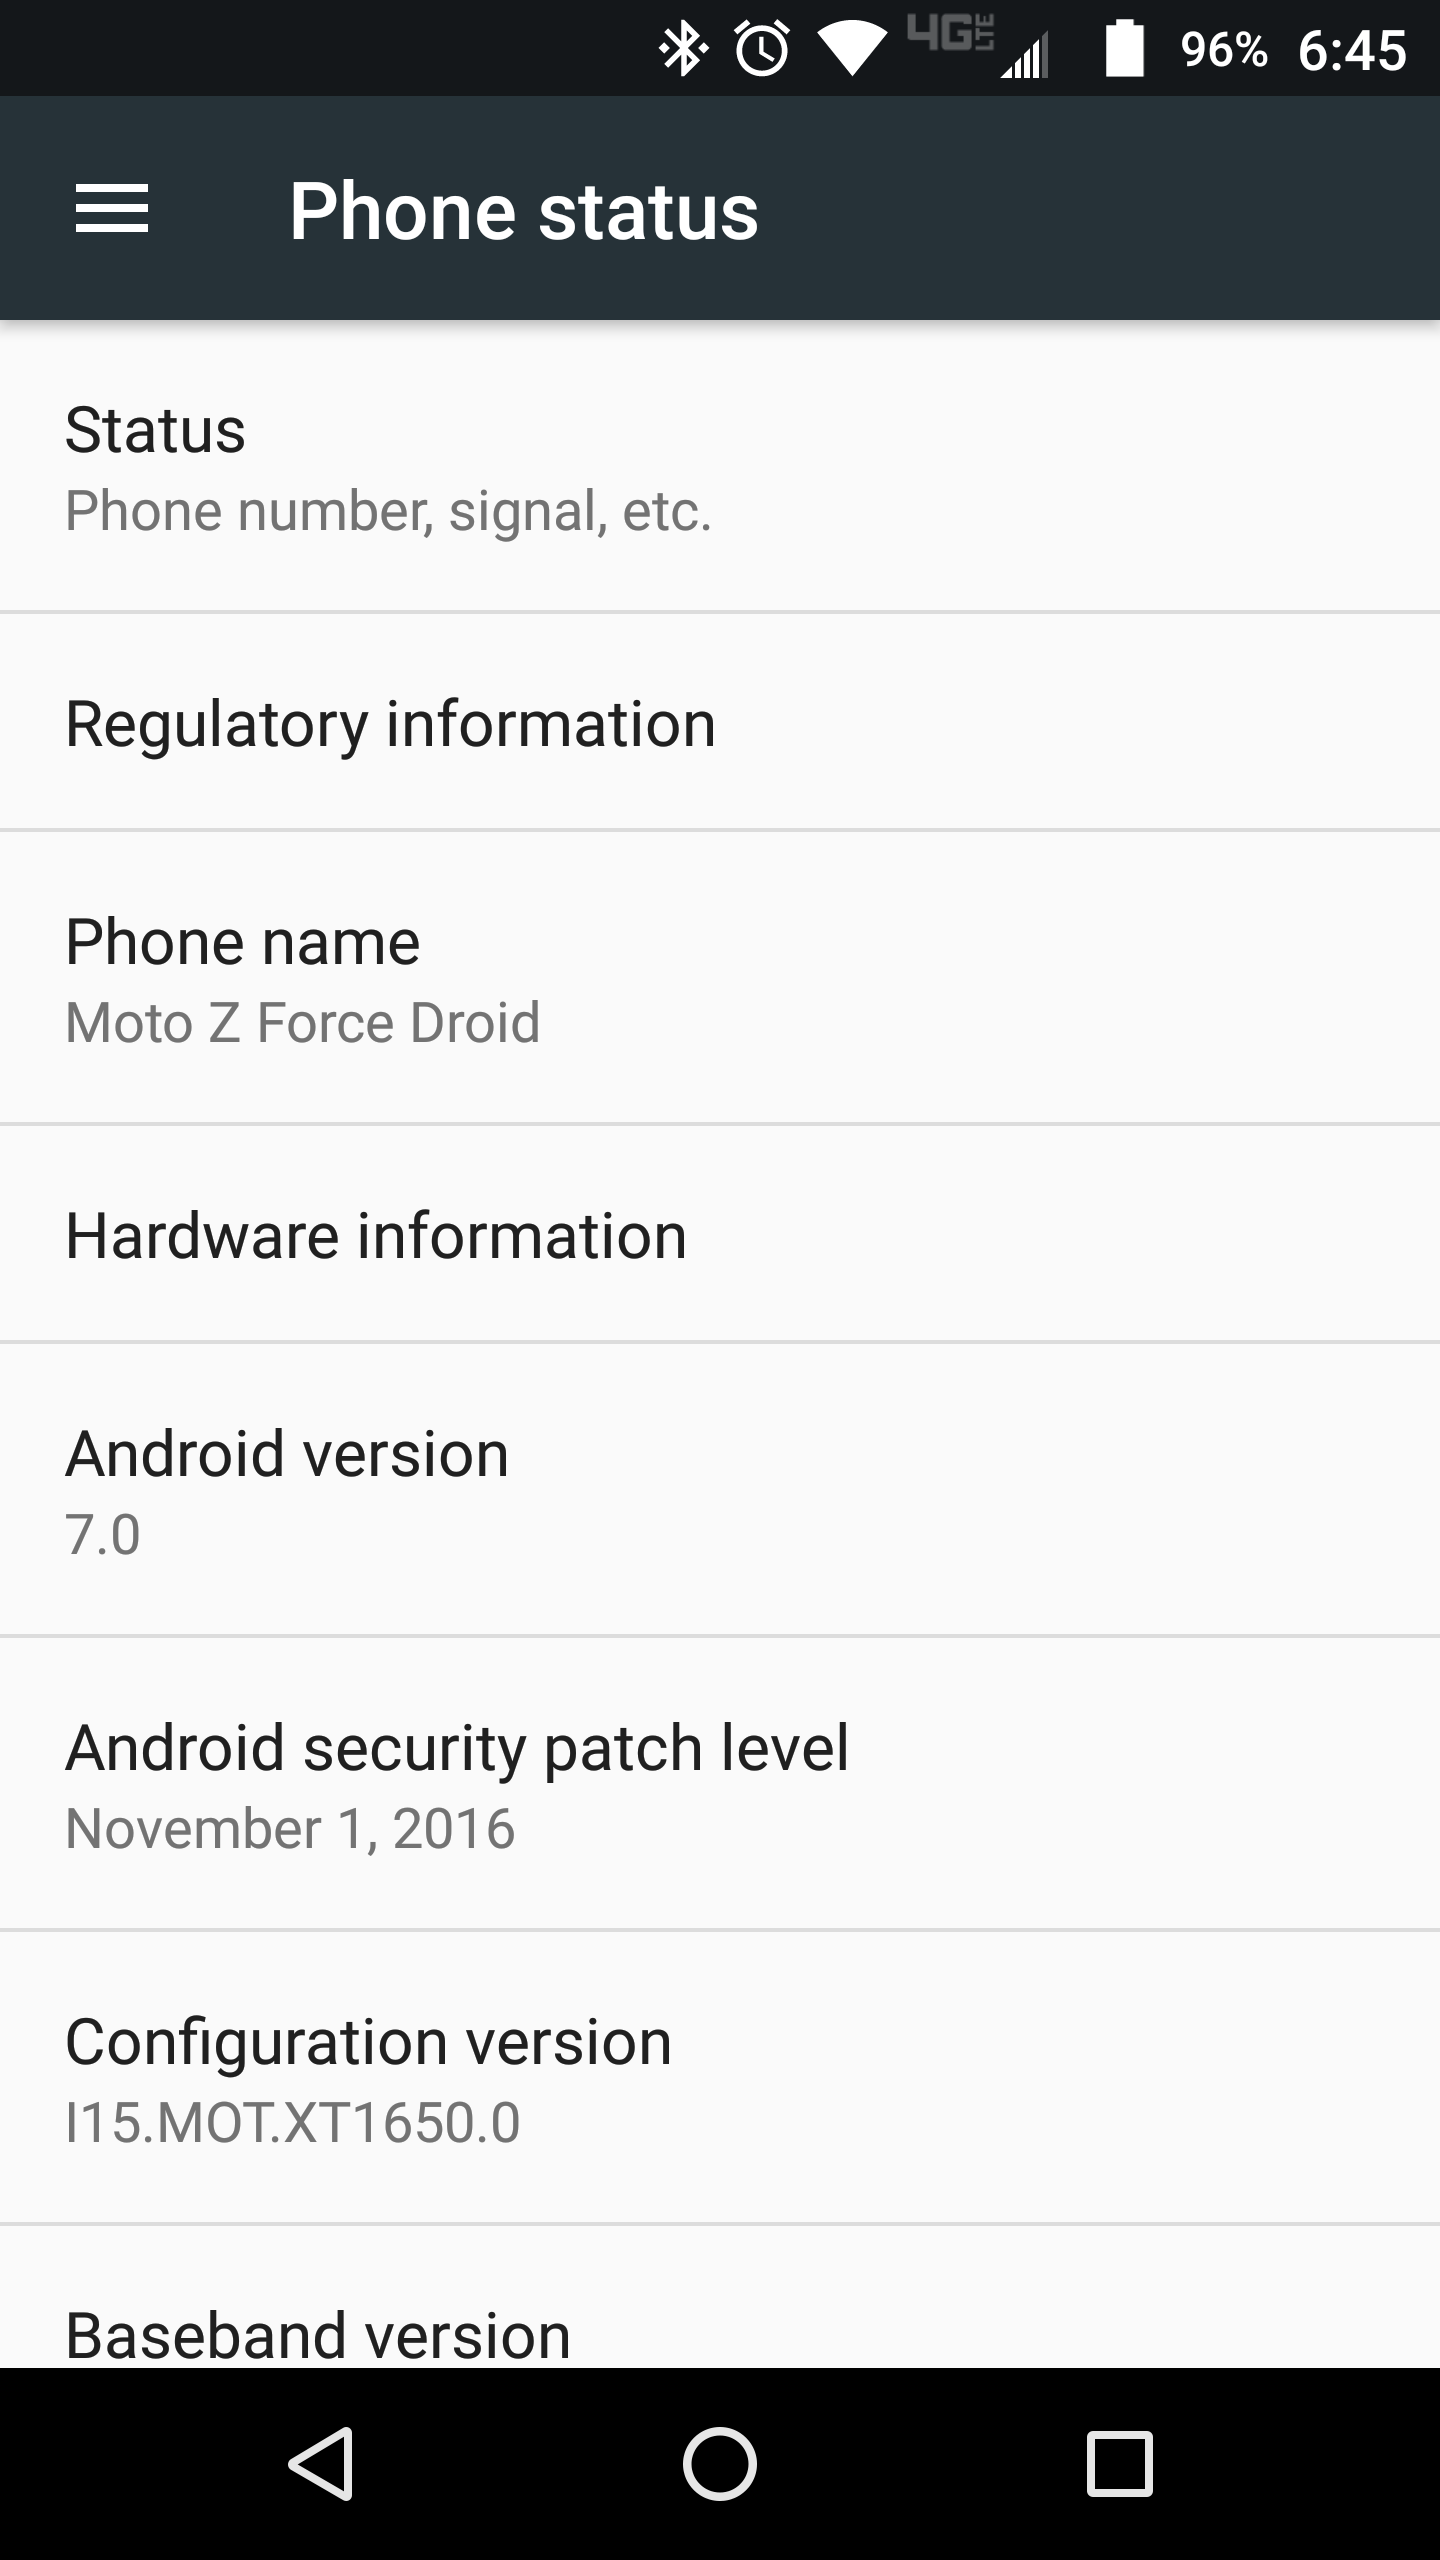 Moto Z Force Droid Android 7.0 Nougat